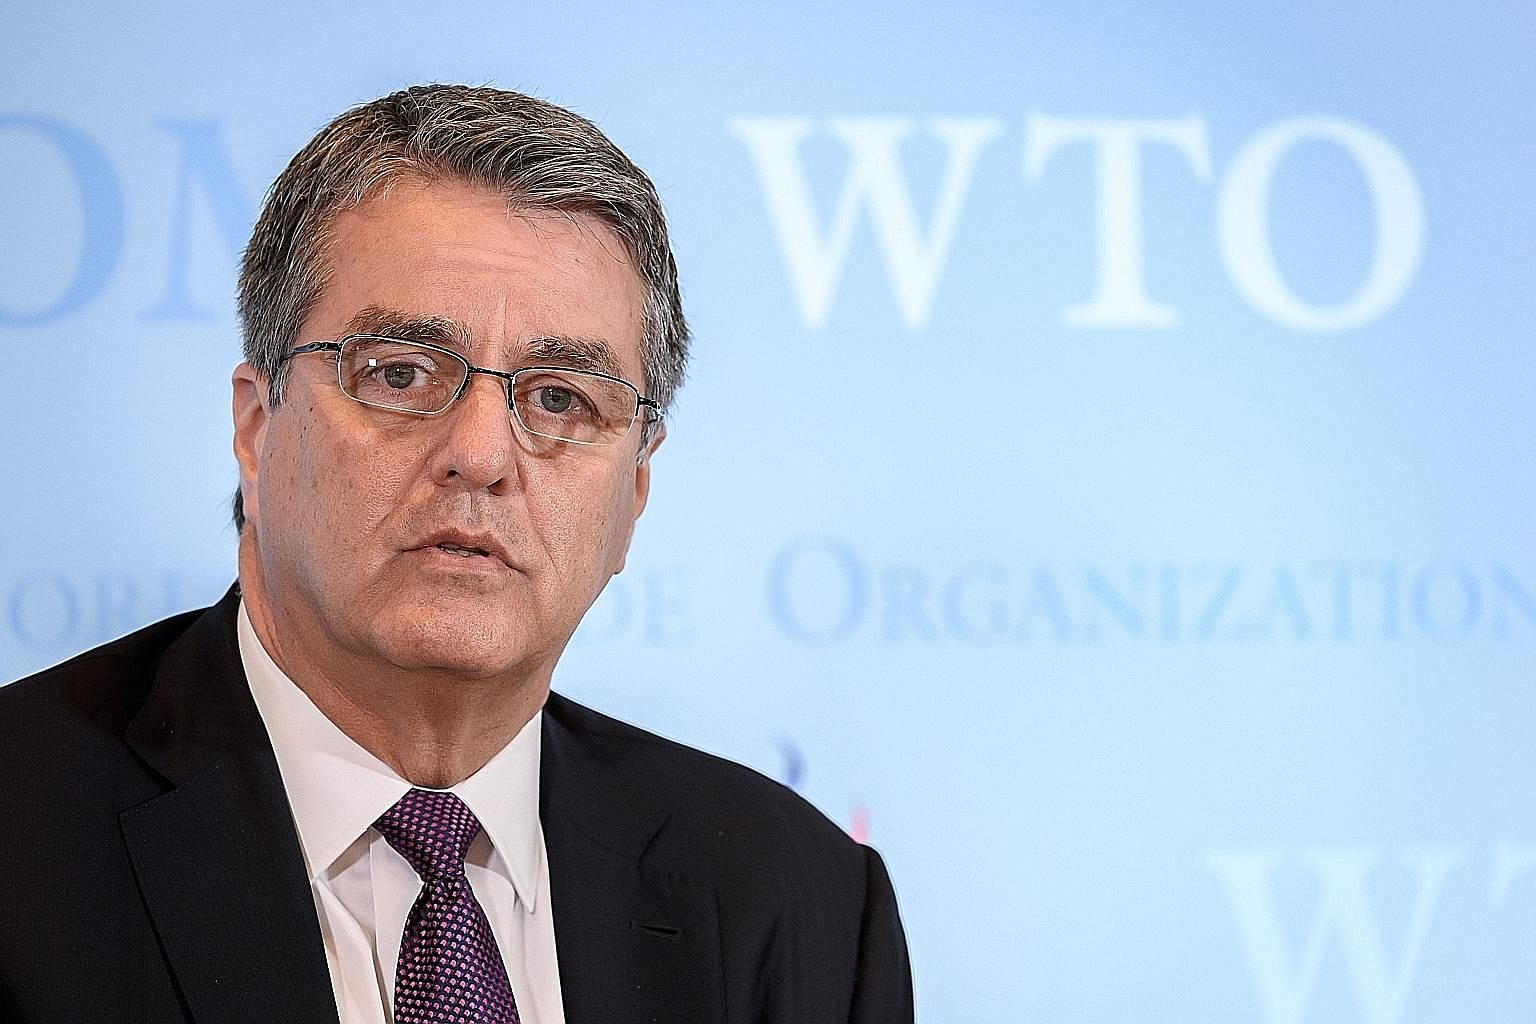 Mr Roberto Azevedo's announcement in May that he would end his second WTO term 12 months early forced the organisation to speed up its process of selecting a new leader. PHOTO: AGENCE FRANCE-PRESSE